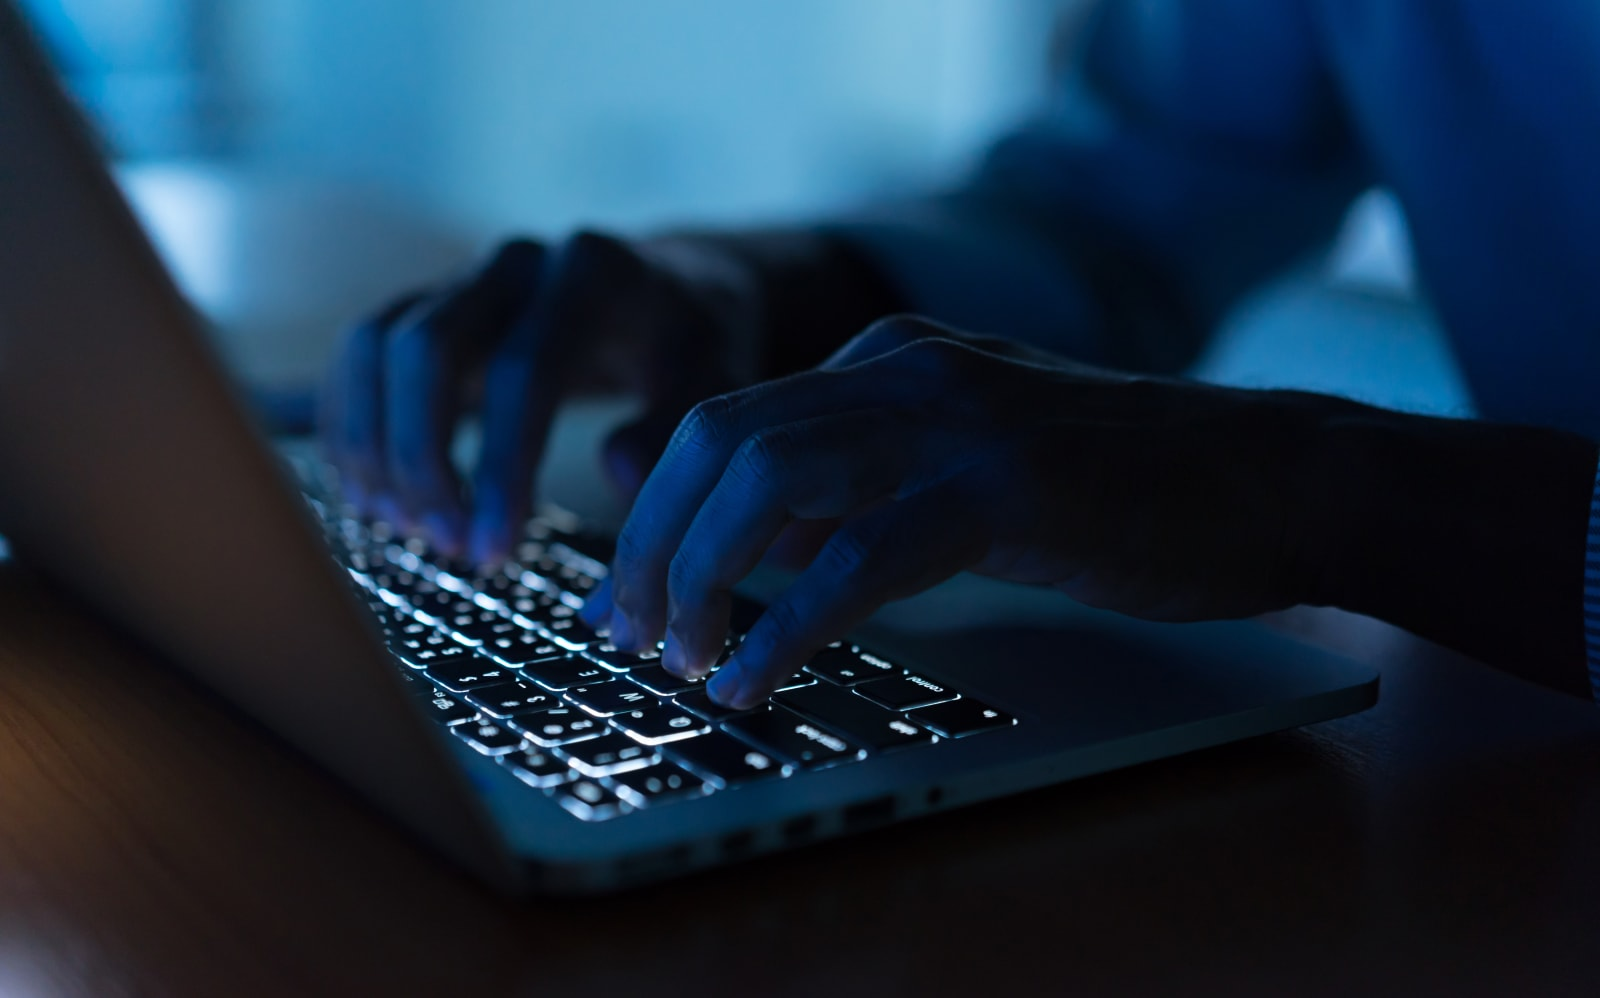 DOJ charges two Russians with using malware to steal millions